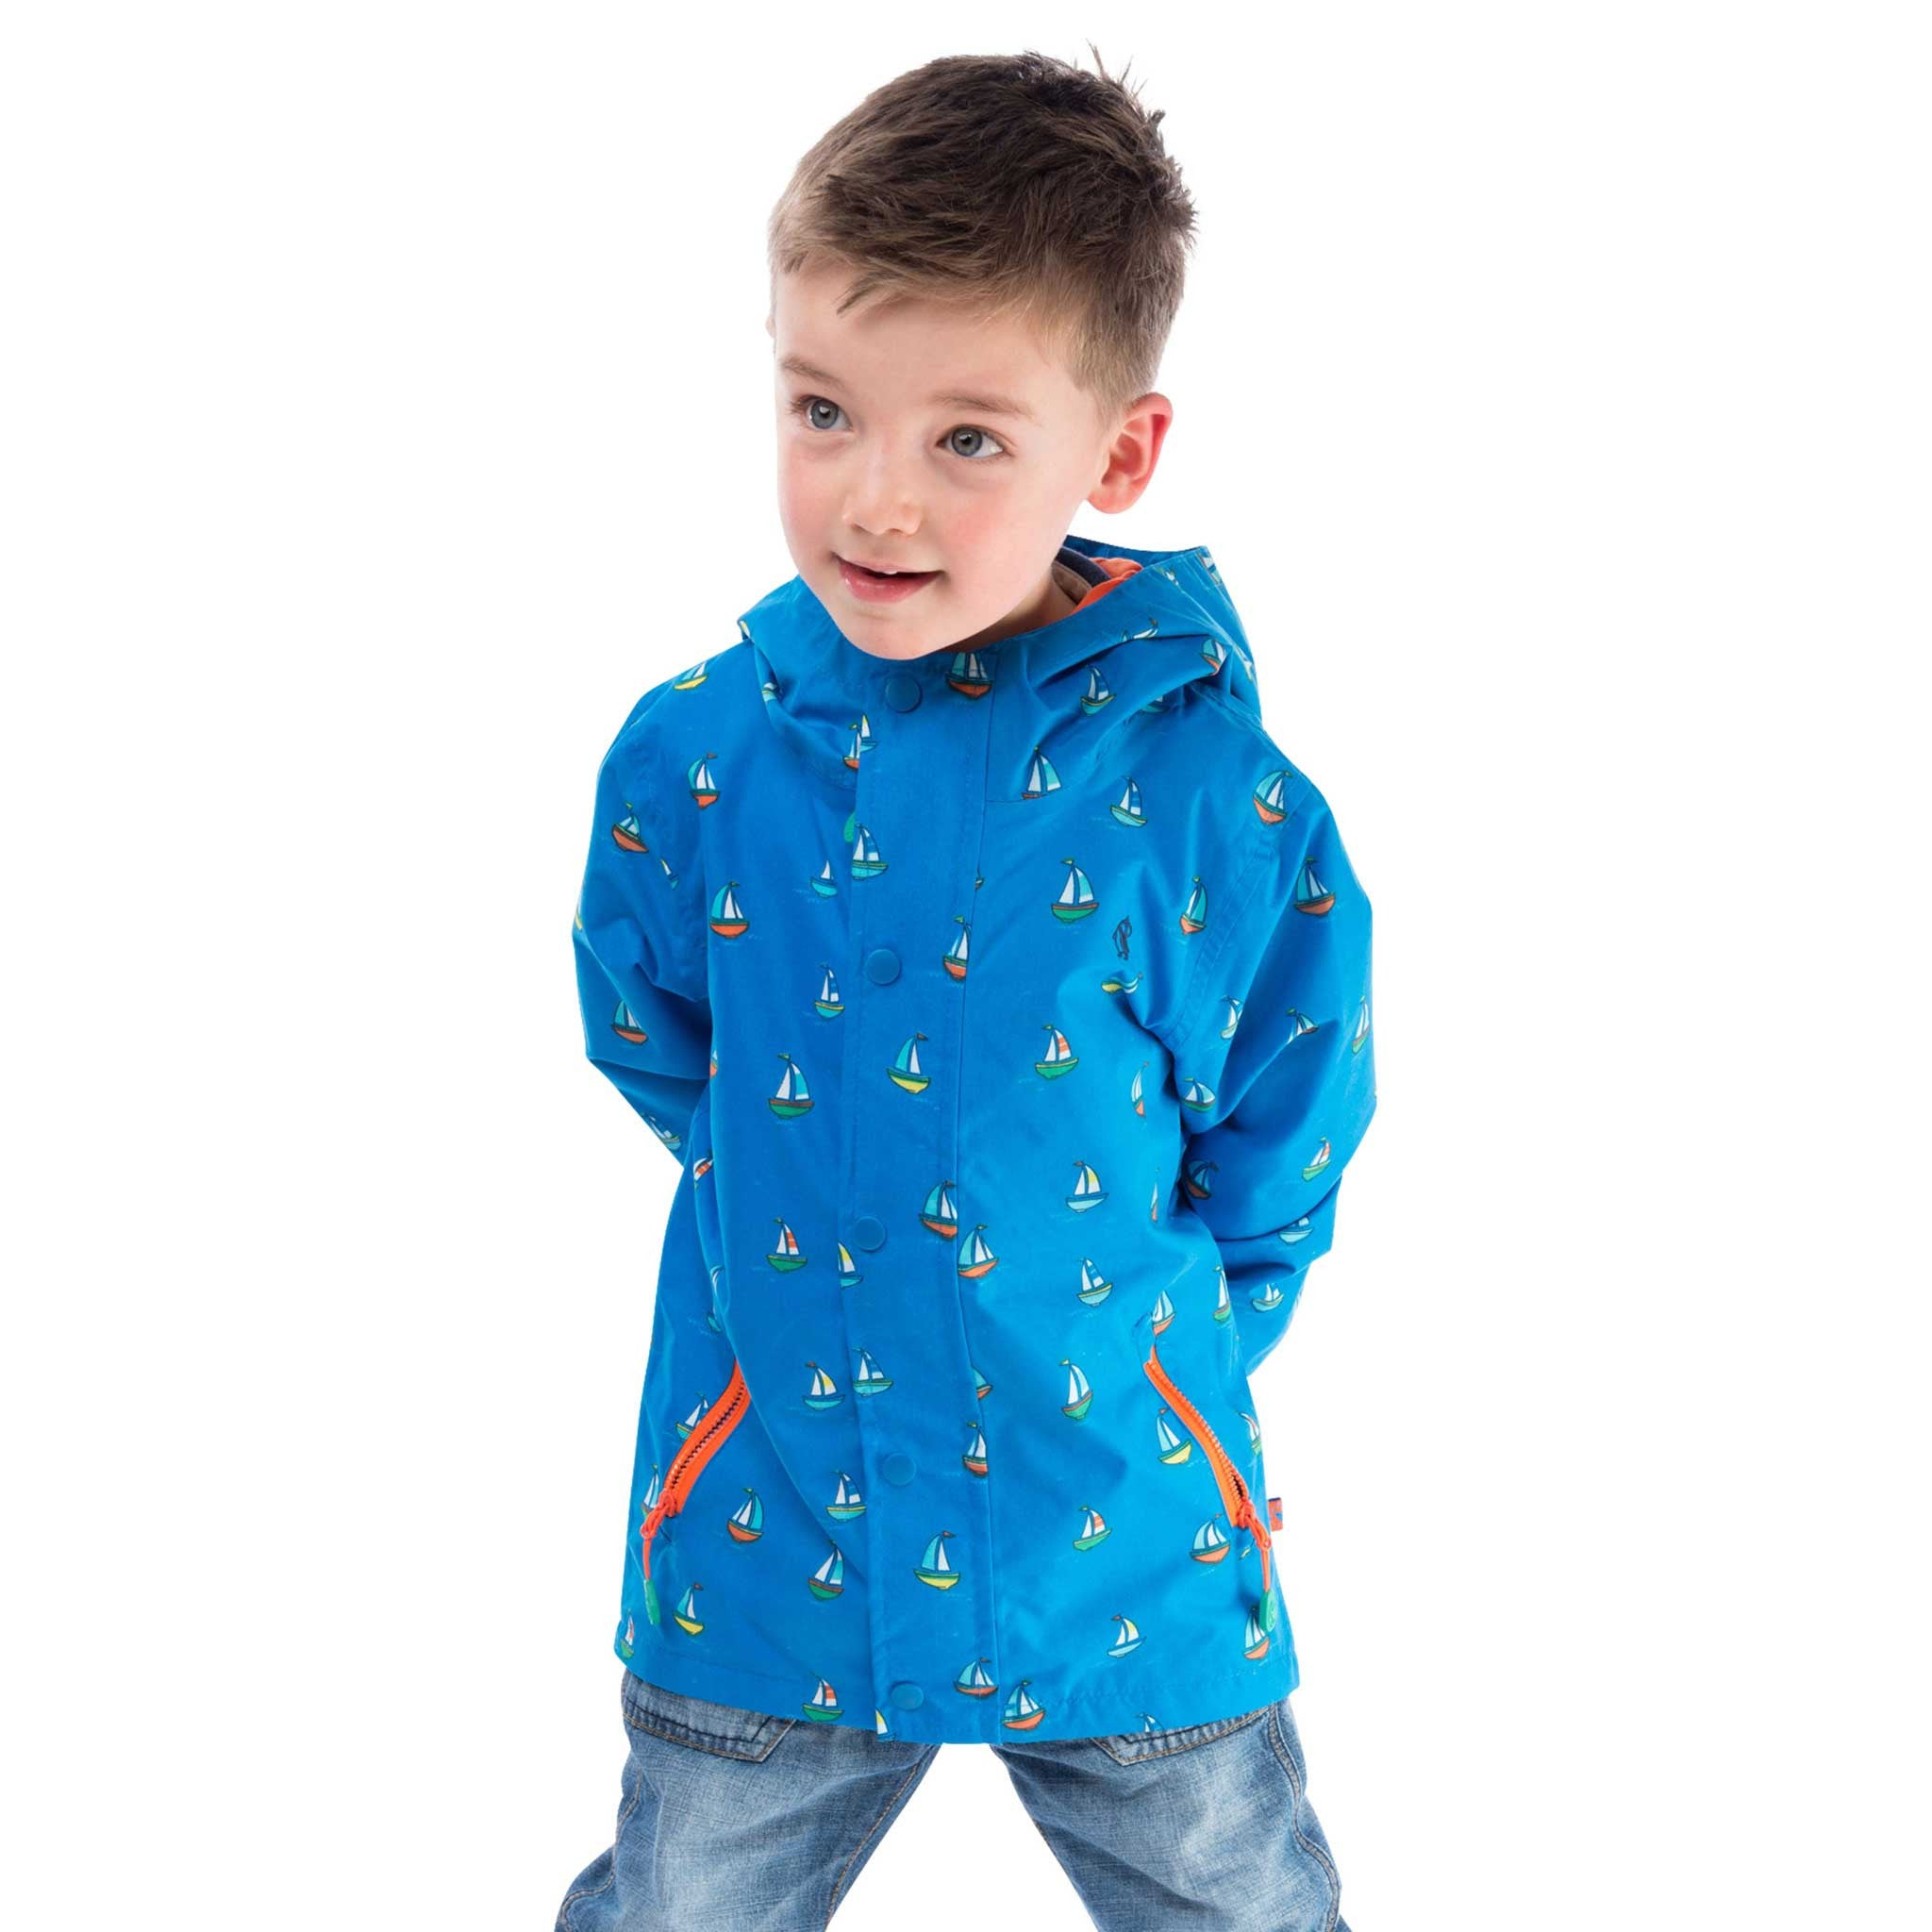 Skipper Boys Waterproof Jacket in Bright Blue Boat, Modelled Front View | Lighthouse